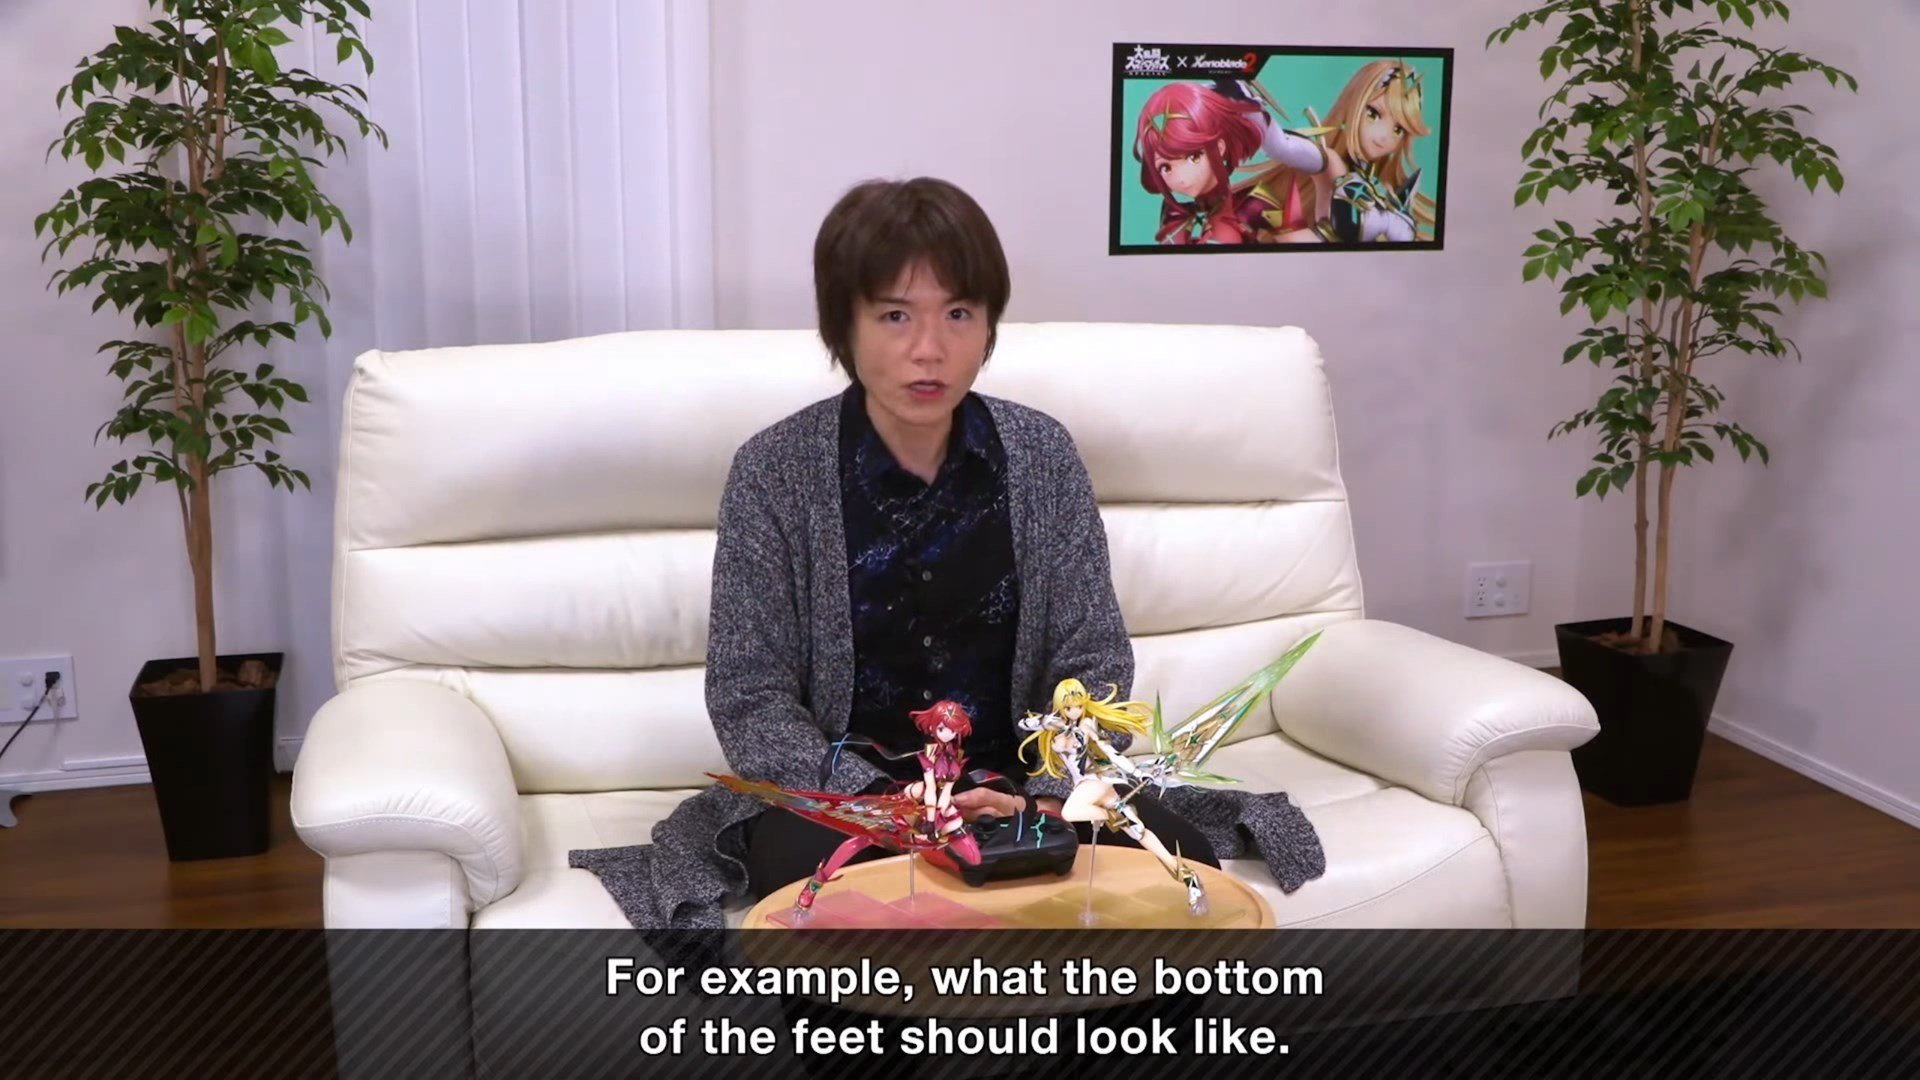 If you want the Pyra and Mythra figures Sakurai was talking about and haven't gotten them yet, you'll have to wait until 2023 screenshot